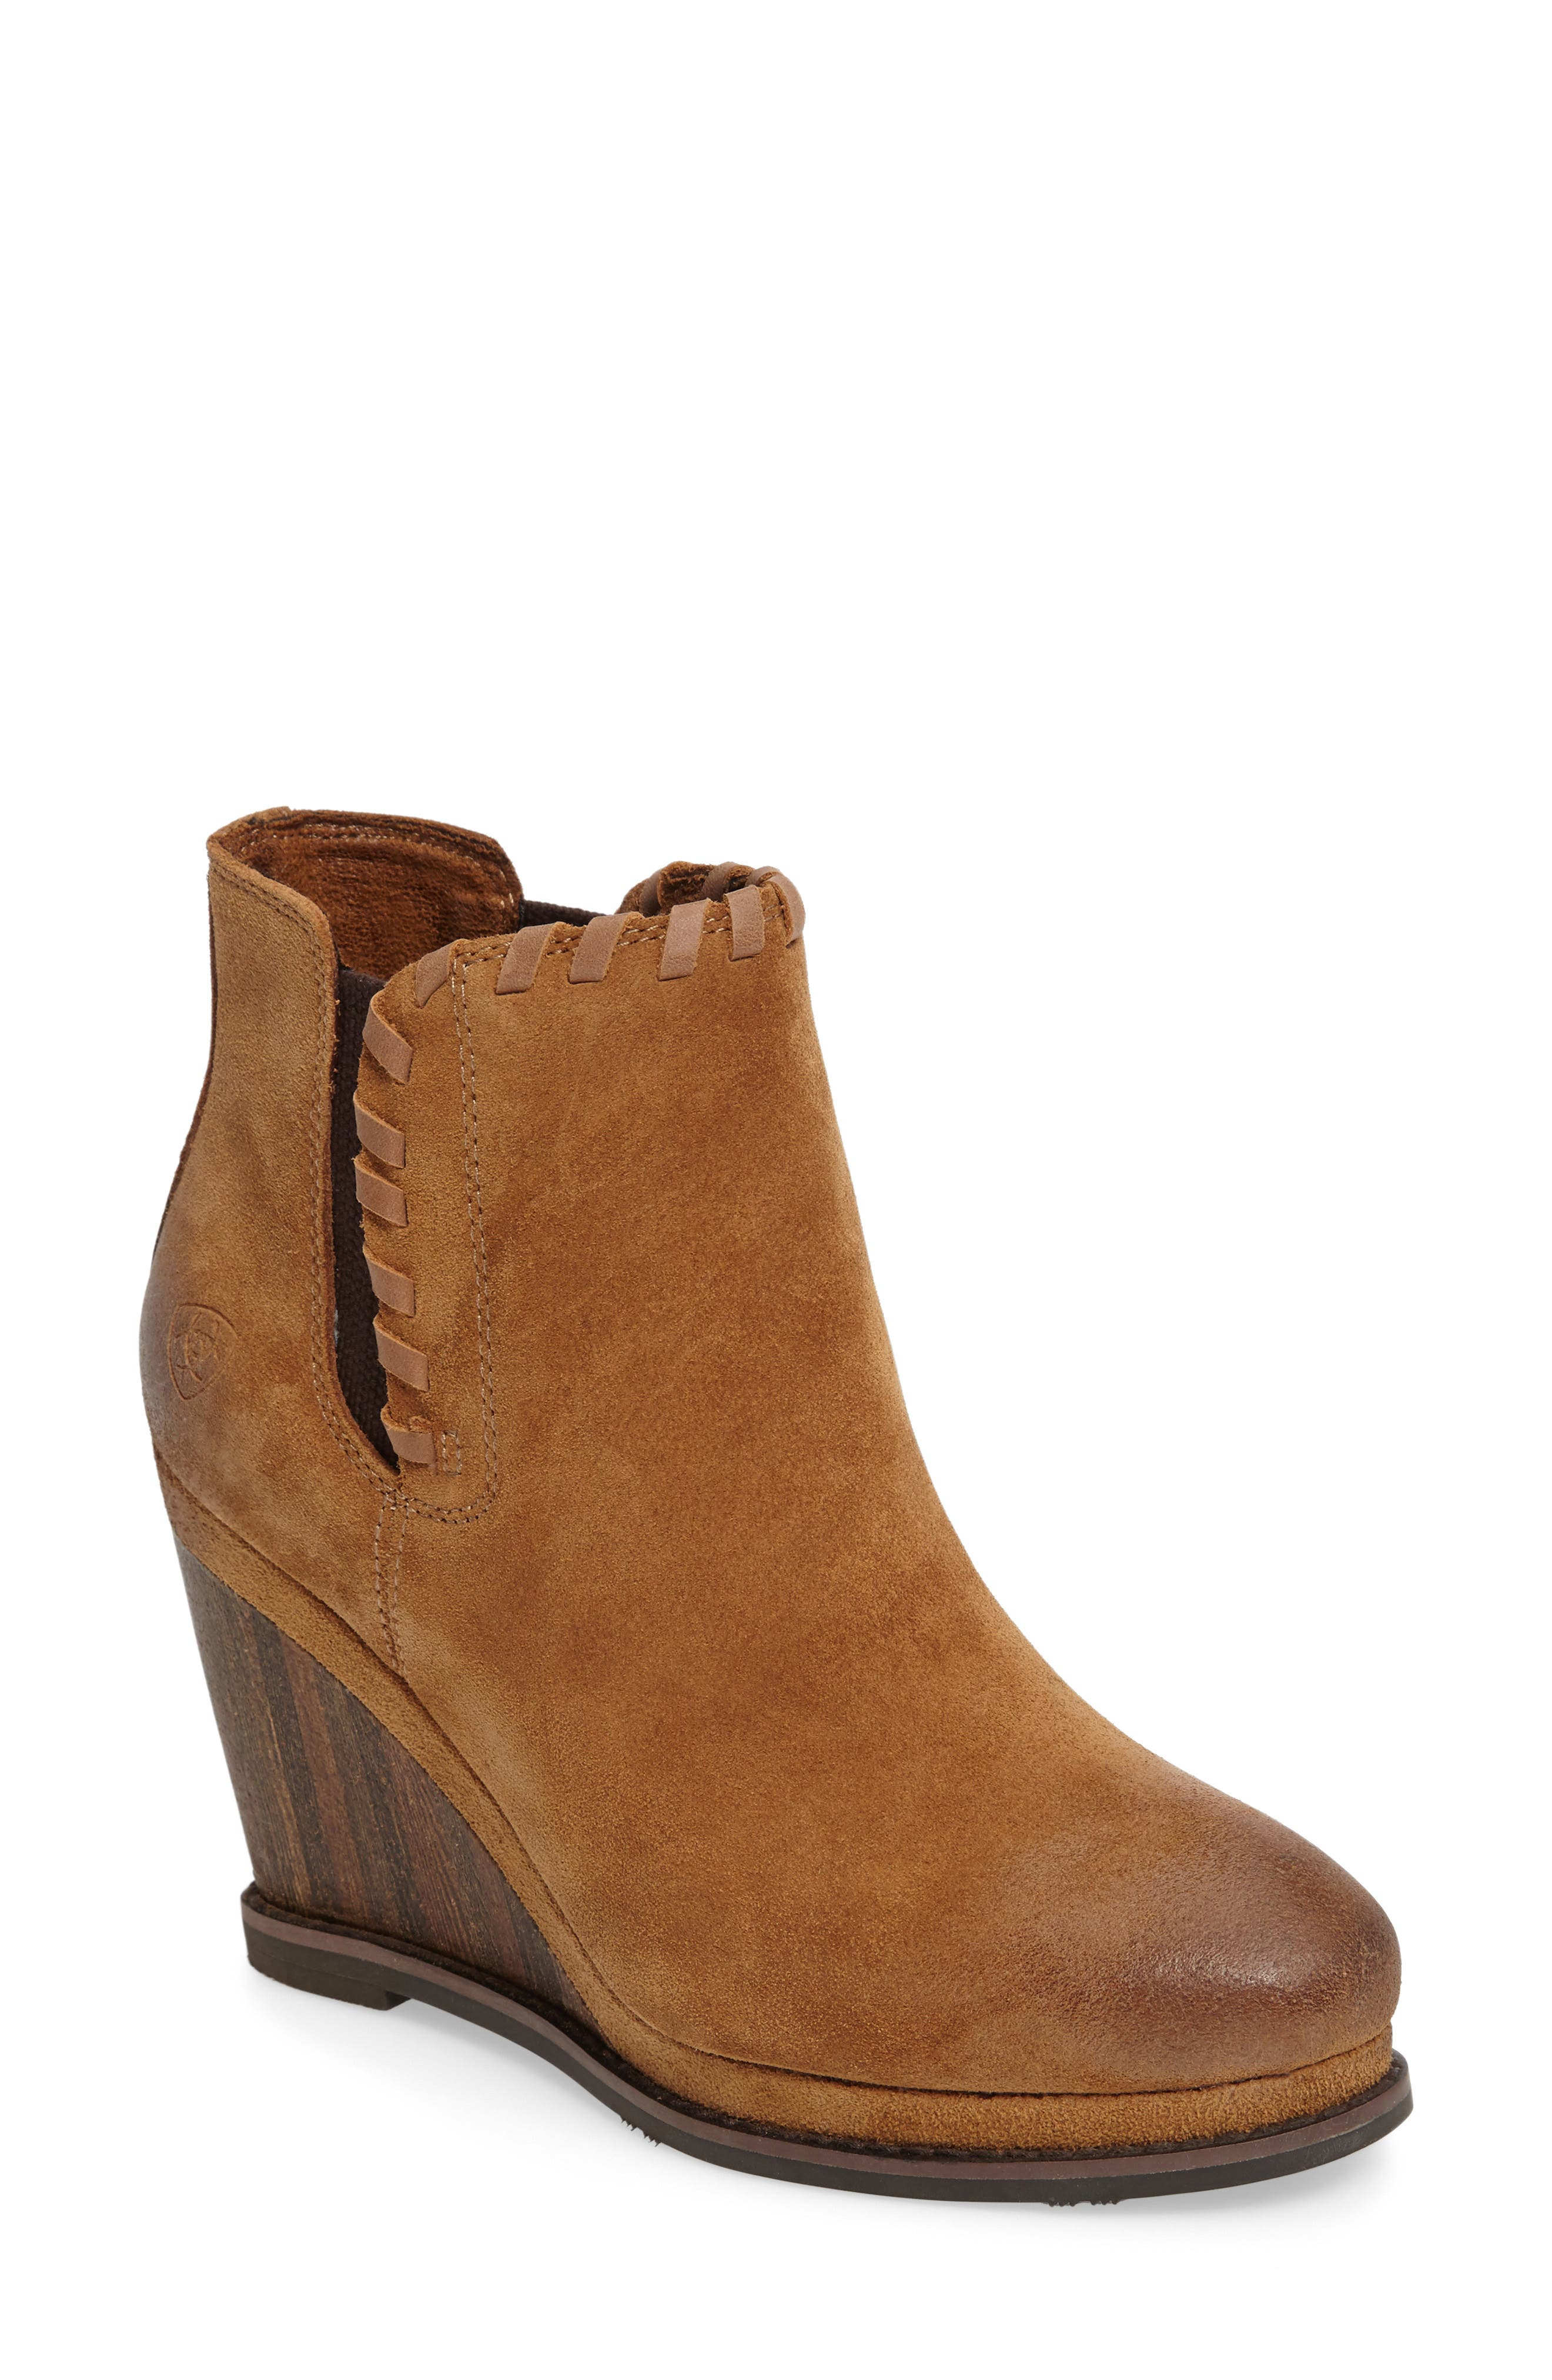 Belle Wedge Bootie,                         Main,                         color, SAND LEATHER